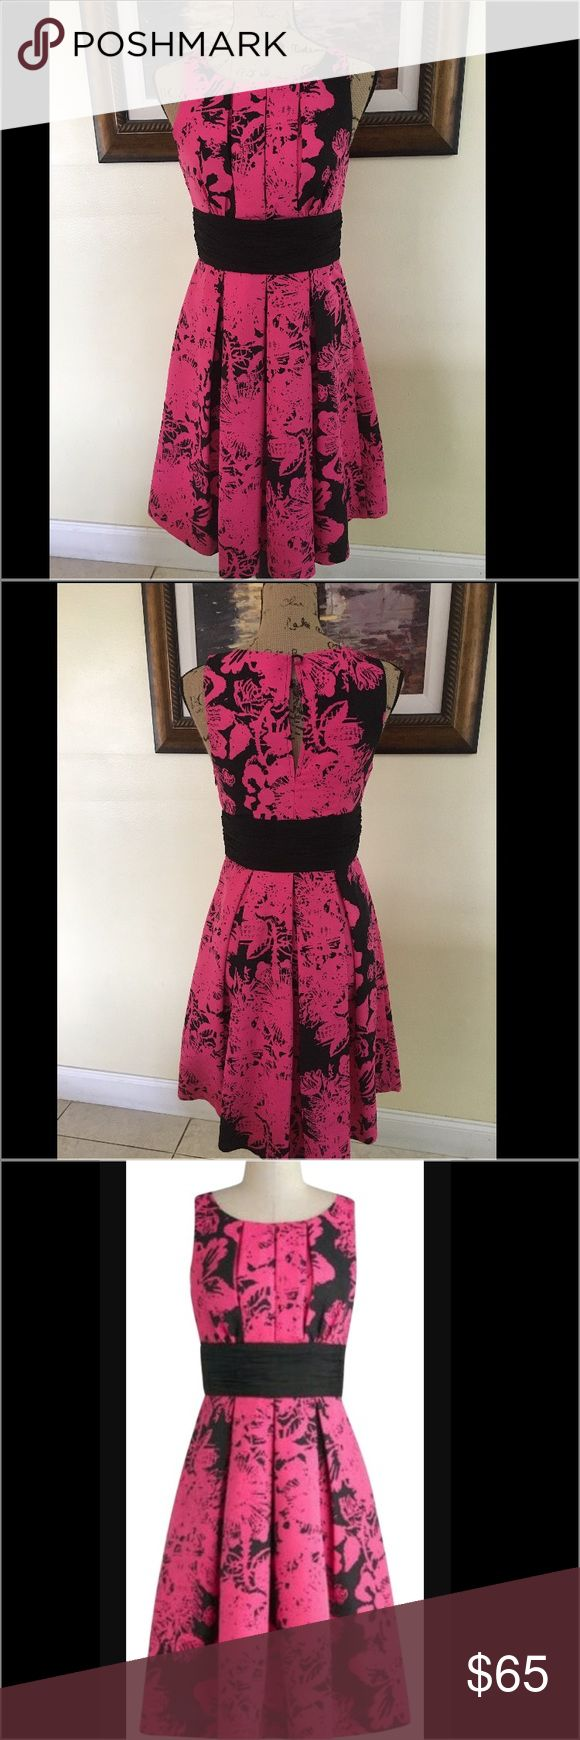 Plenty By Tracy Reese Dress Plenty By Tracy Reese Dress.  Aline dress with a gather at the waist.  Pink and black Flattering fit. Plenty by Tracy Reese Dresses Midi